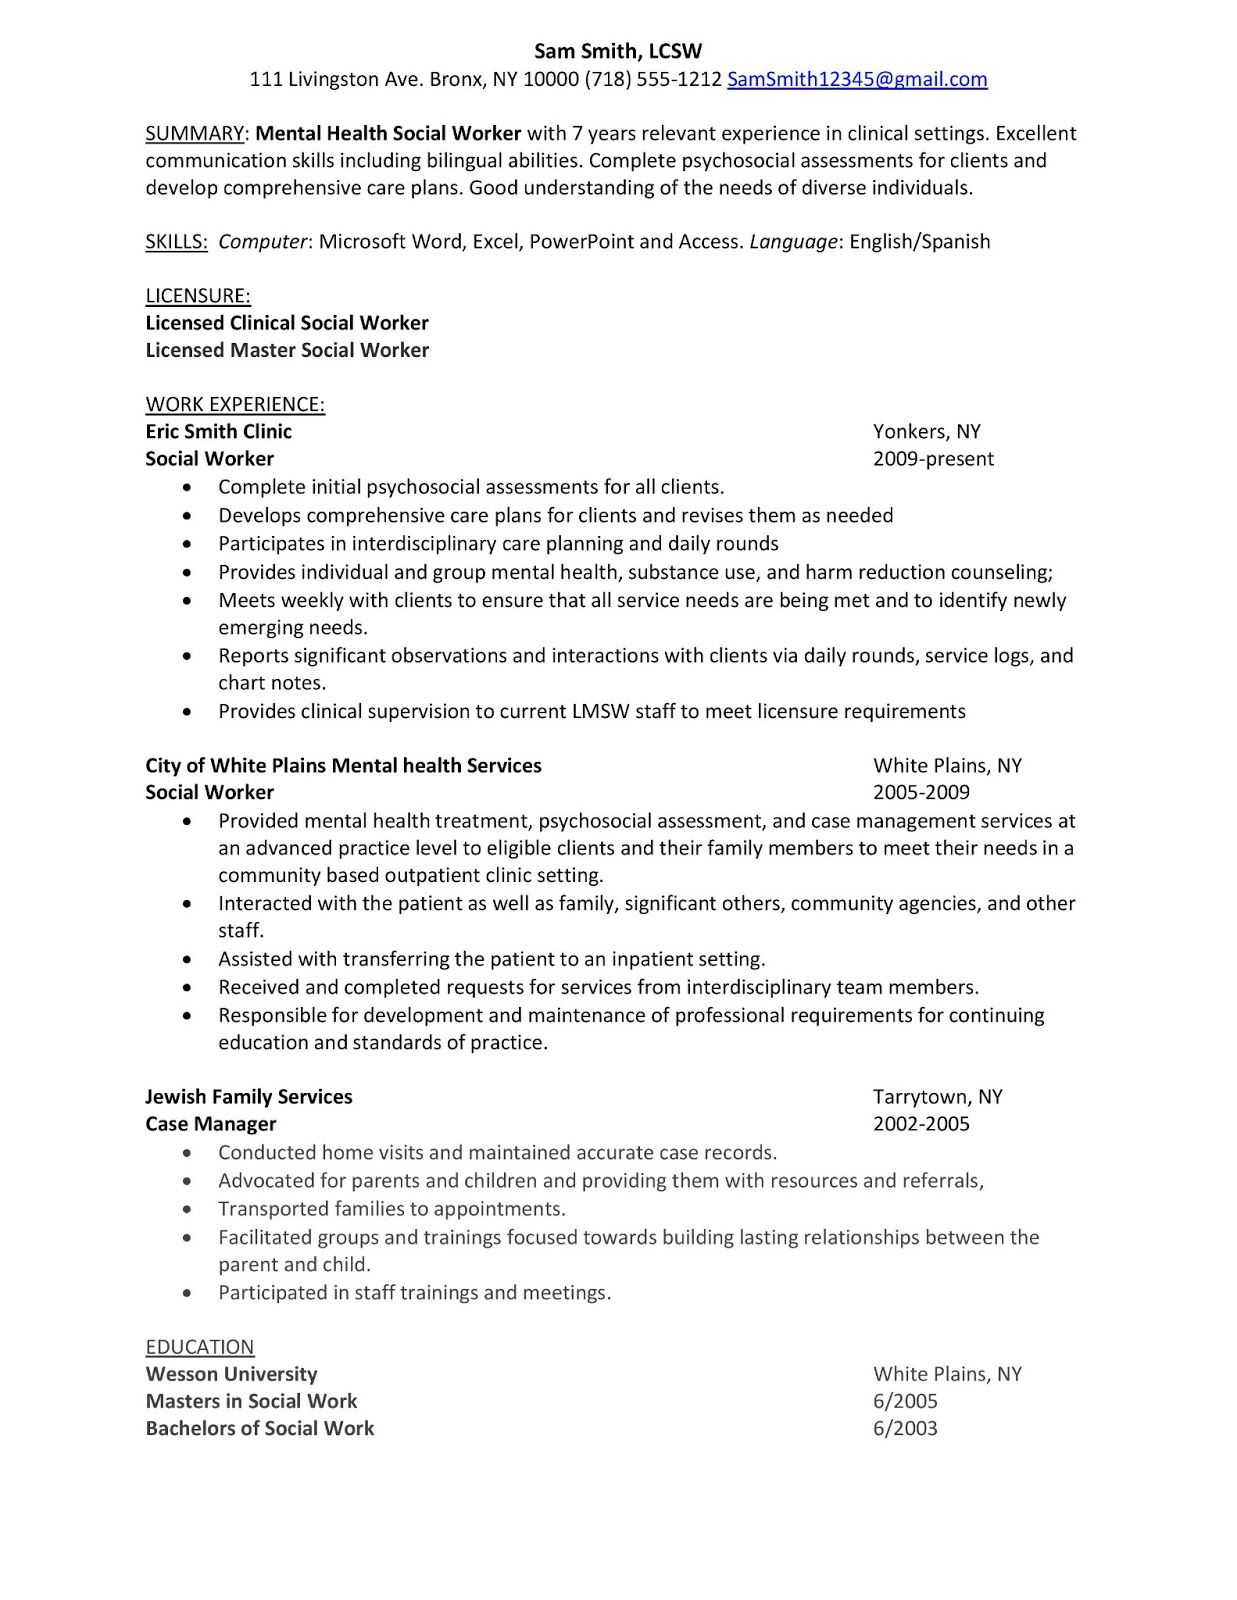 resume title sample resume objective title example objectives for resume template home design cover leter